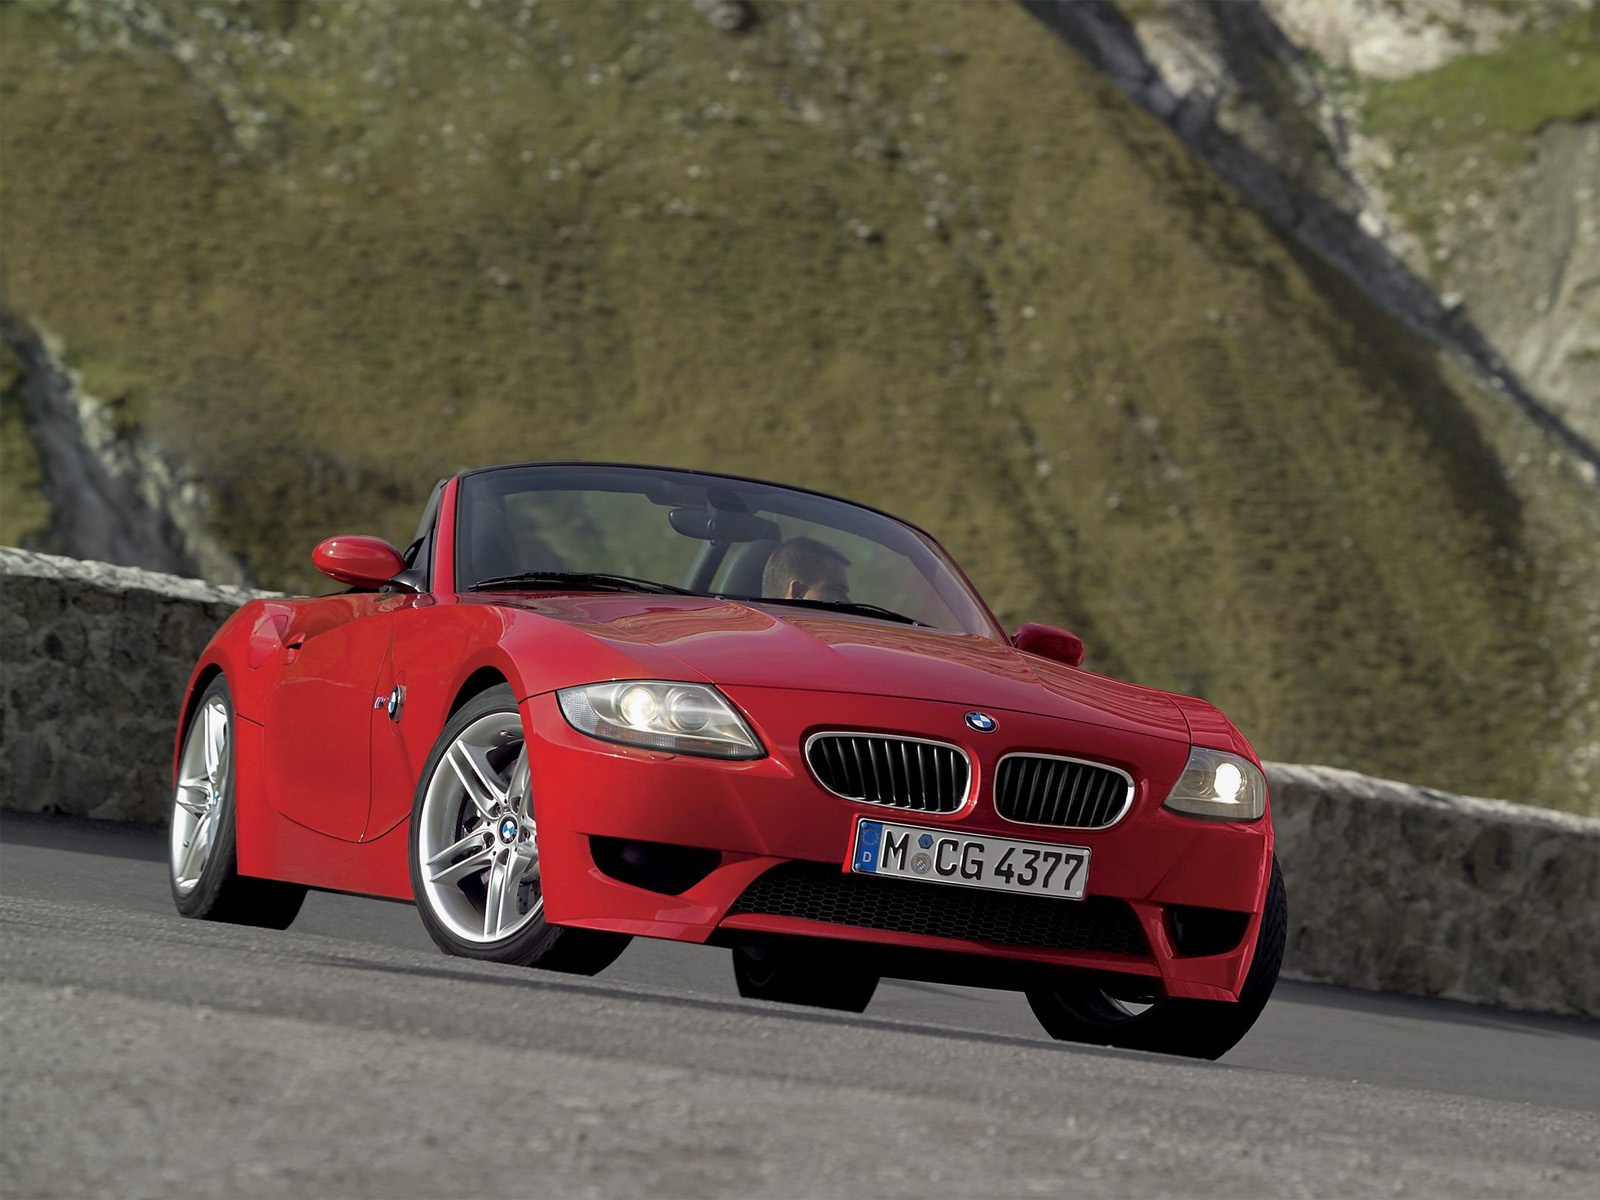 2006 BMW Z4 M Roadster Review - Top Speed